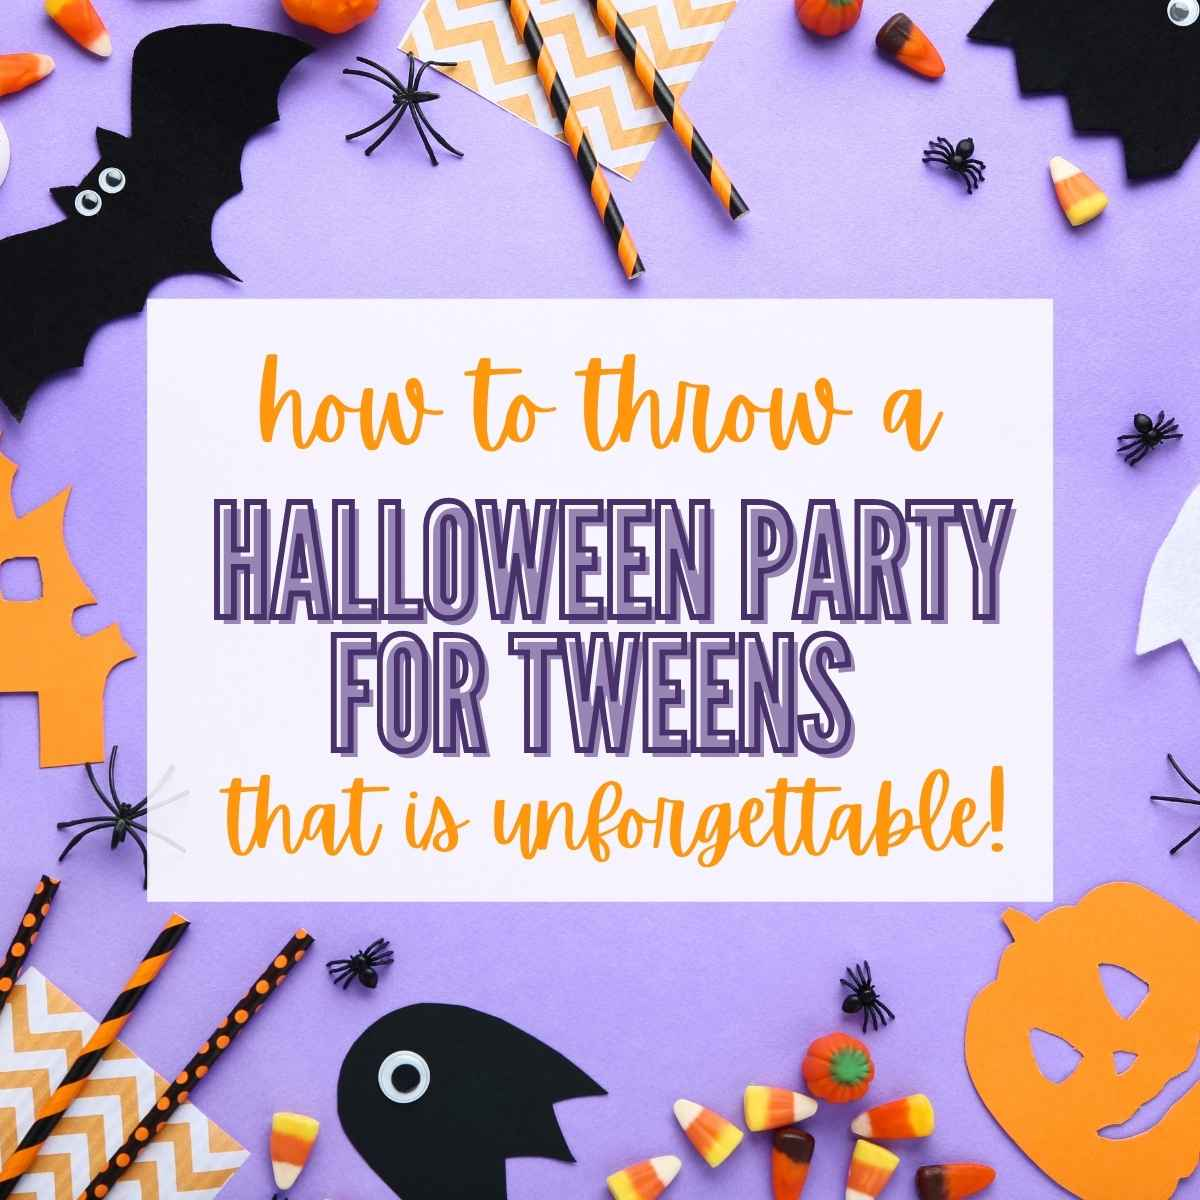 flatly with paper bats and pumpkins, Halloween candy, straws and plastic spiders with graphic overlay